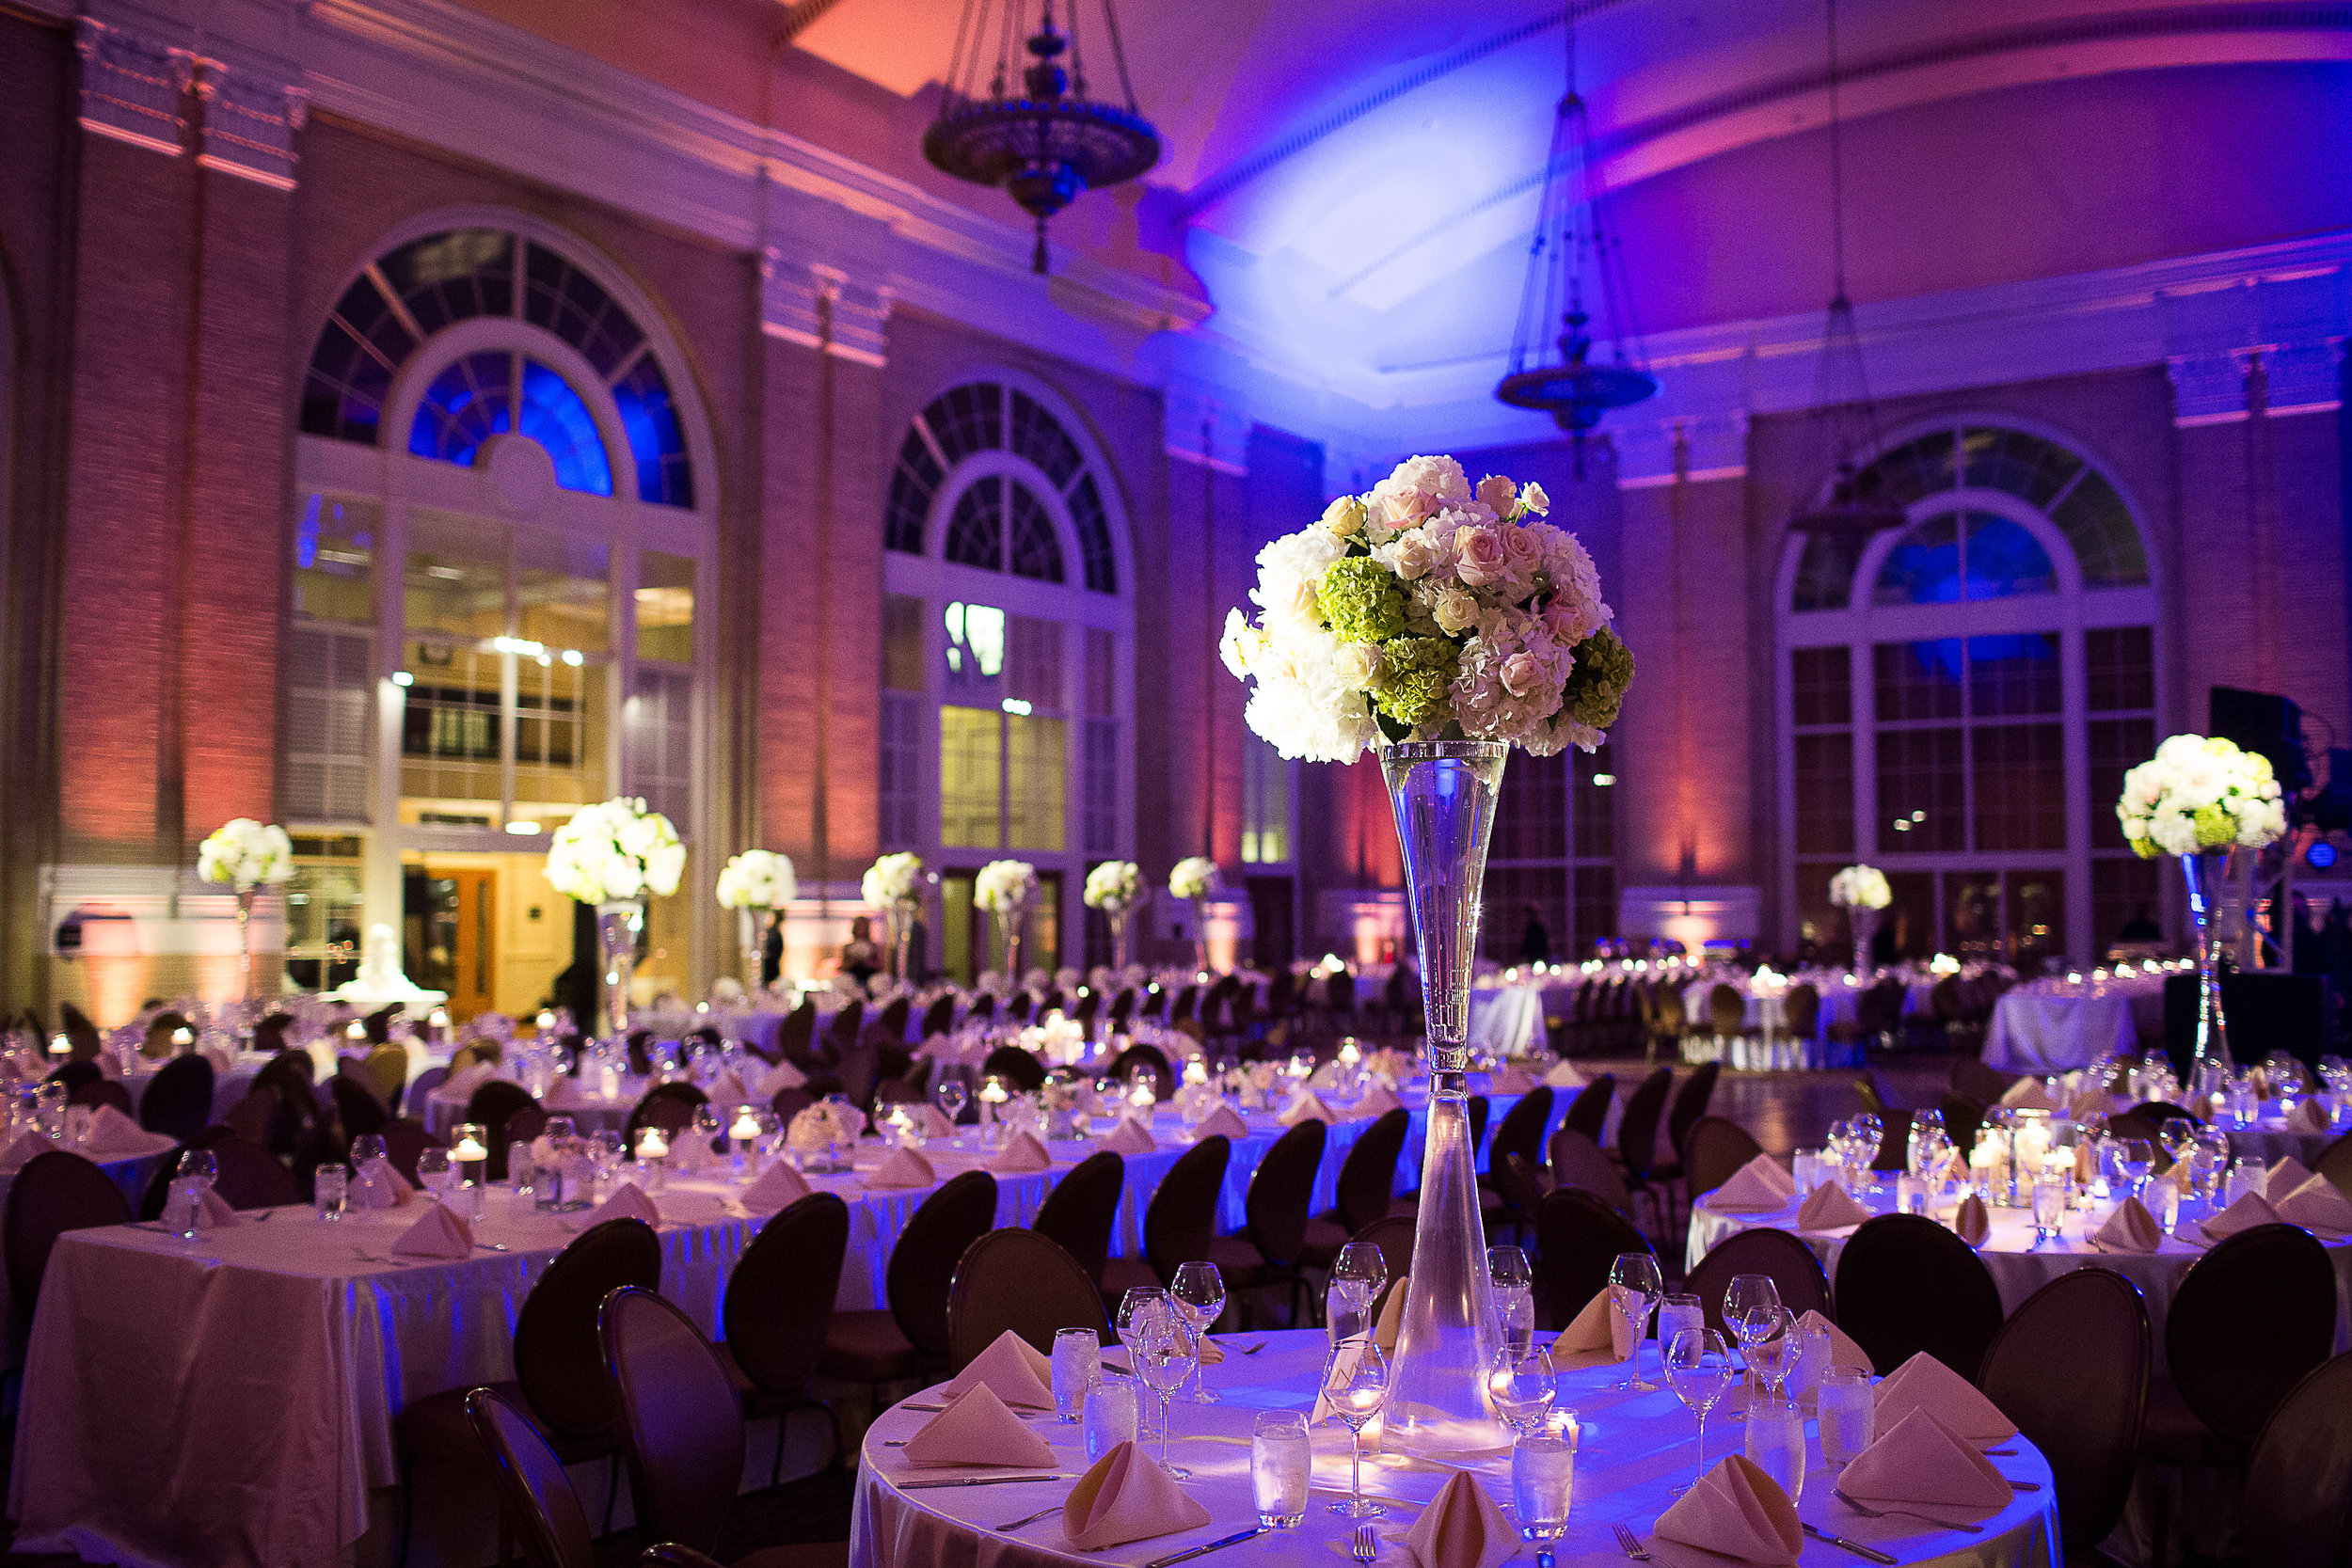 Weddings — Union Station Wolfgang Puck Dallas Wedding Venues